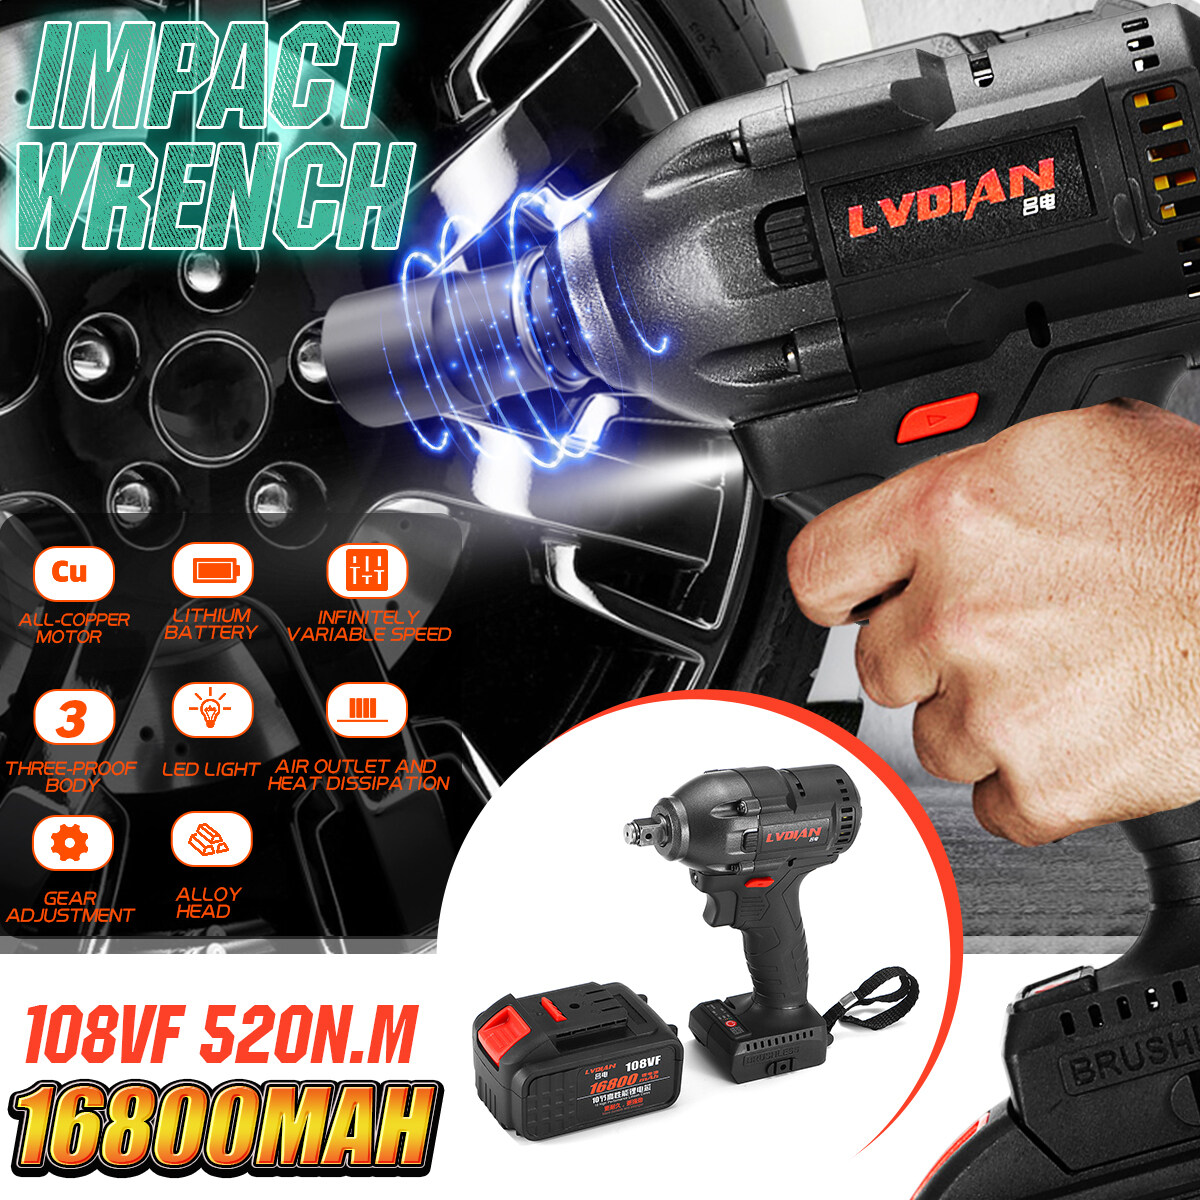 108VF Brushless Cordless Impact Wrench 1/2 Driver 1x Li-ion Battery 16800mAh